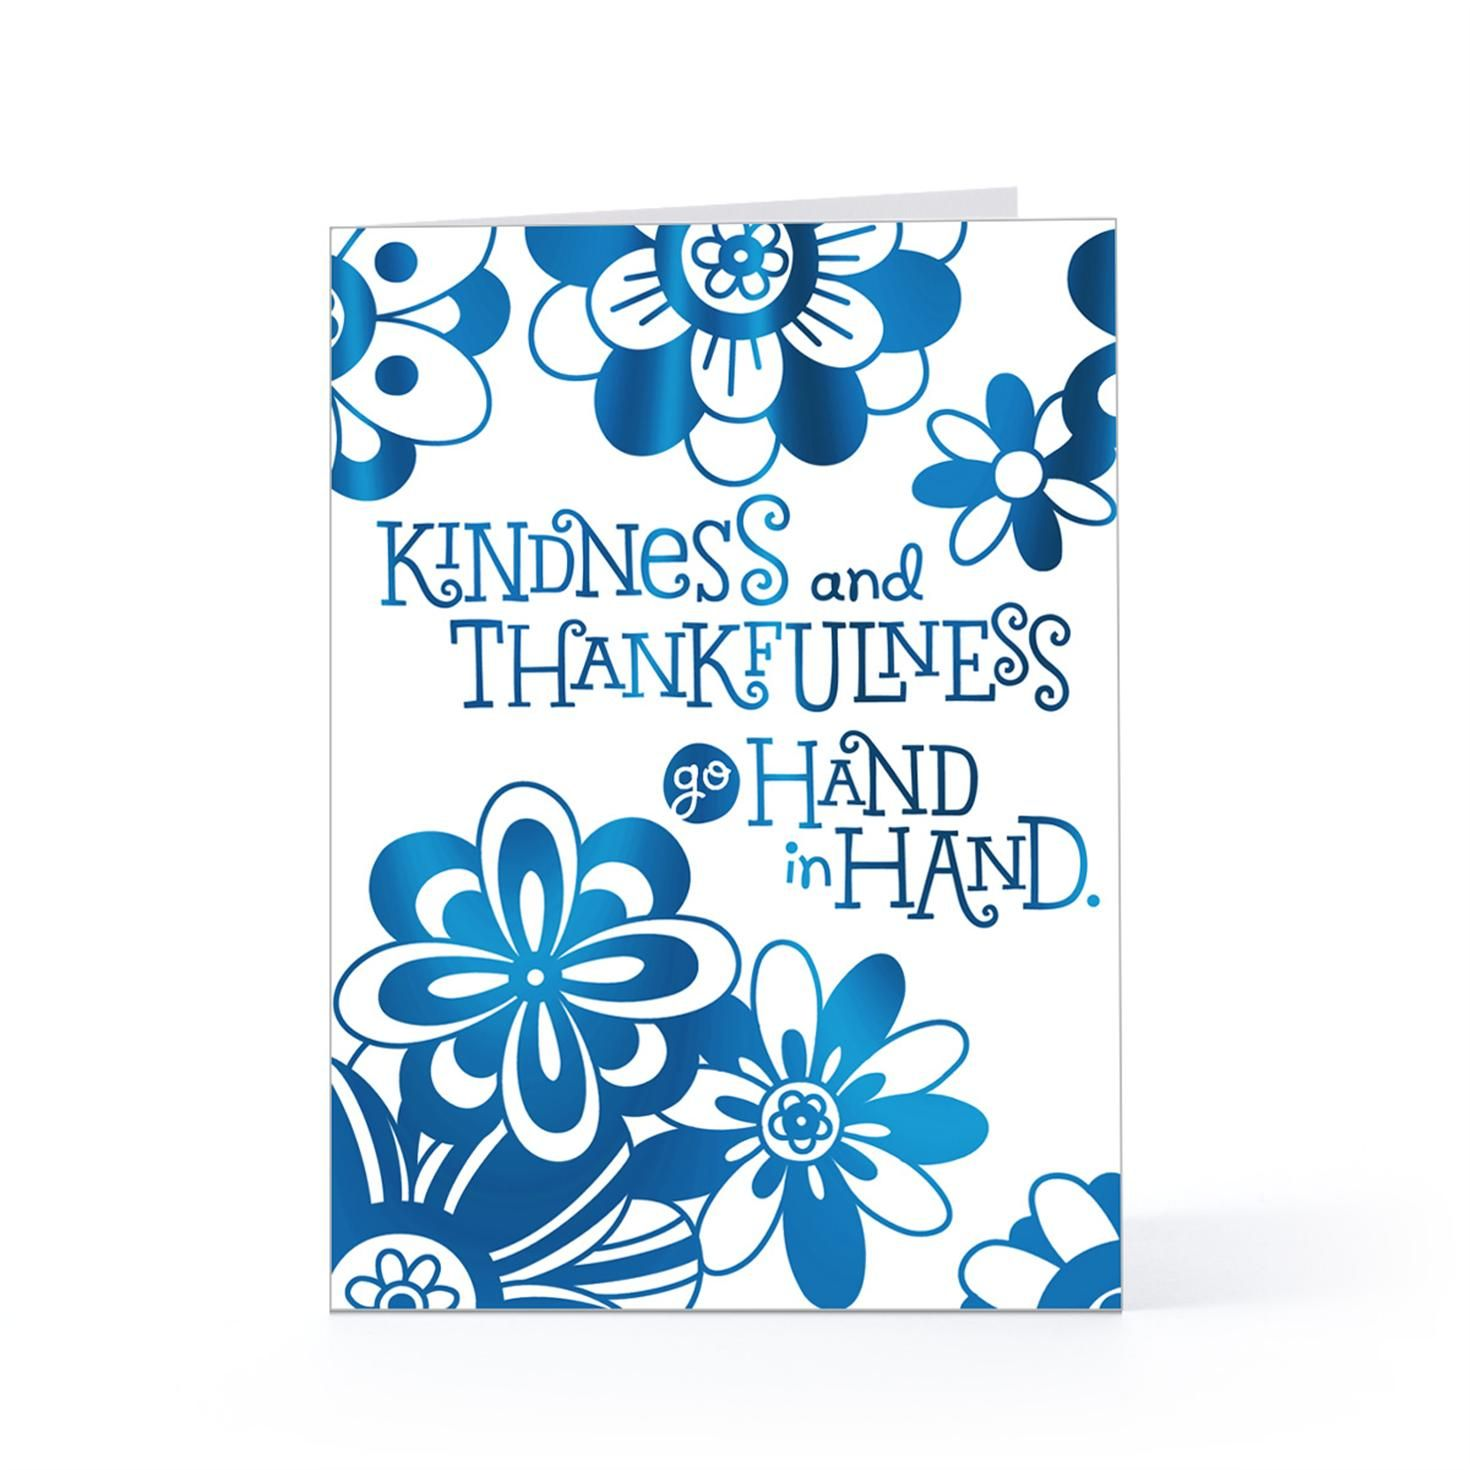 Thank You Electronic Cards Hallmark Printable Free Download Description From Youcards Info I Sea Thank You Card Wording Thank You Cards From Kids Thanks Card